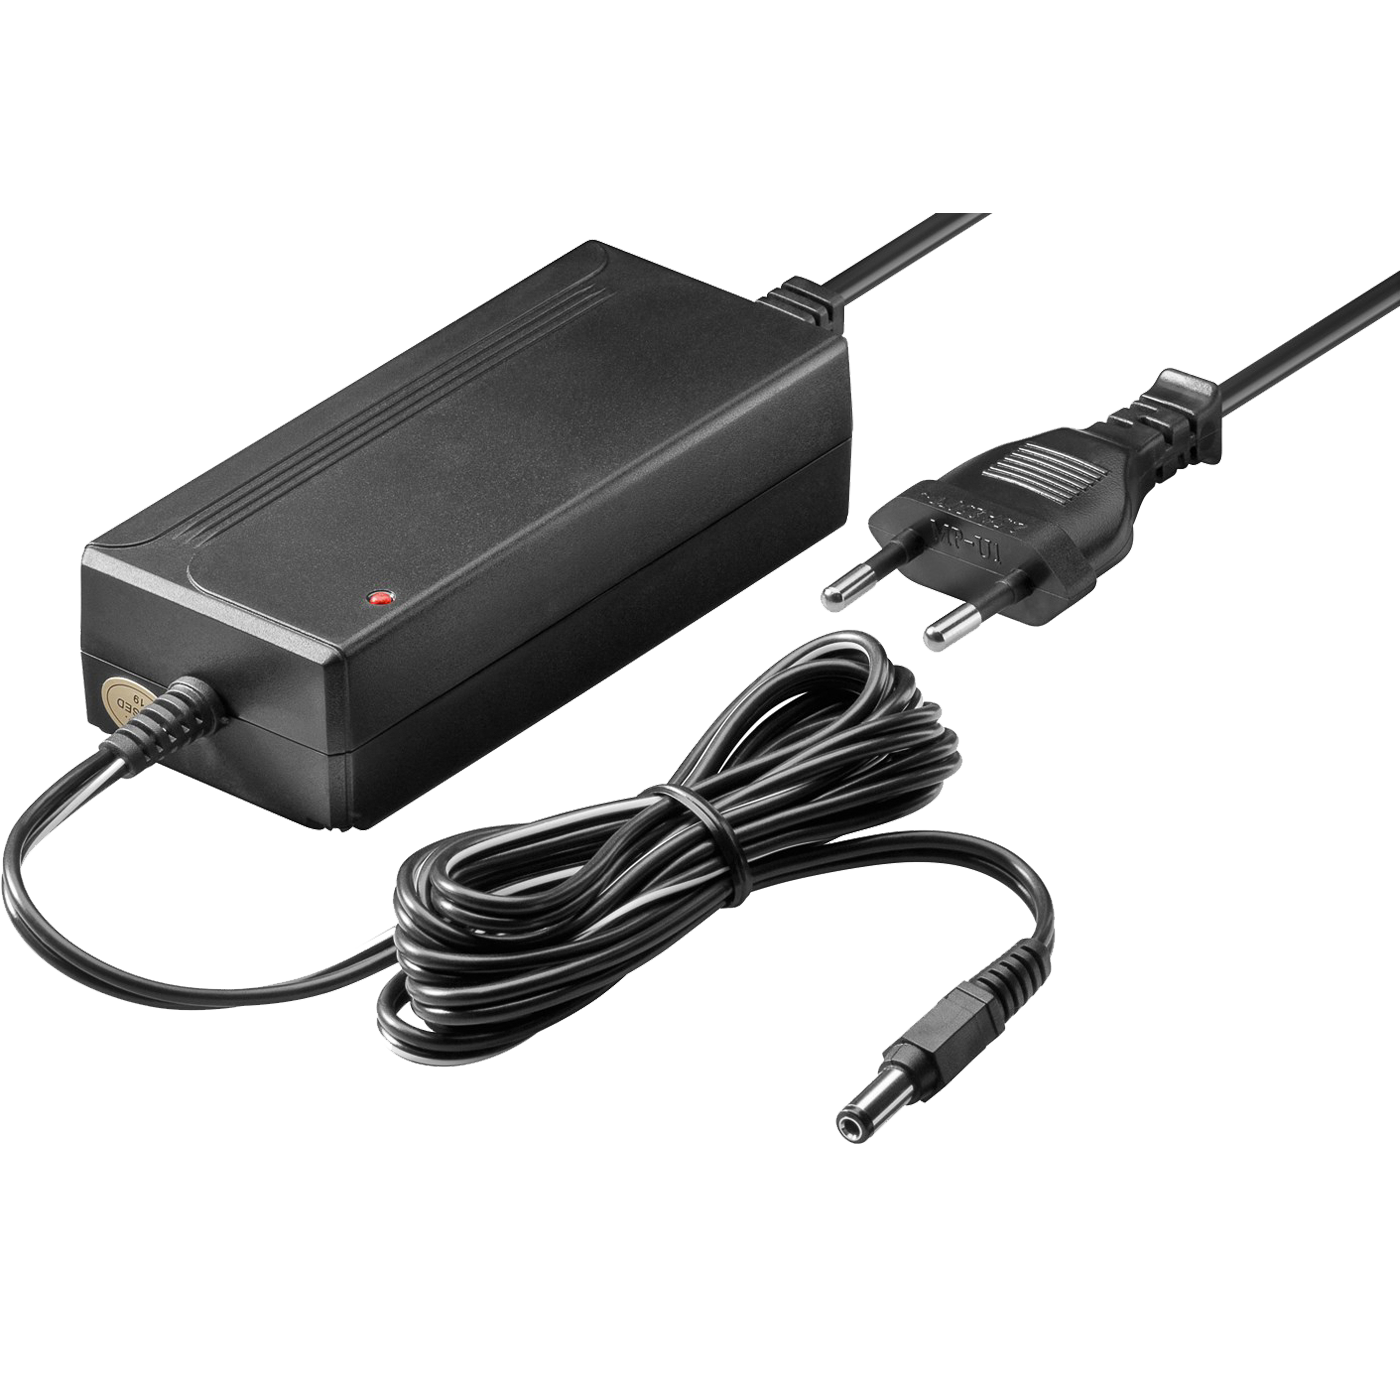 Eule - Adapter 12V/3A